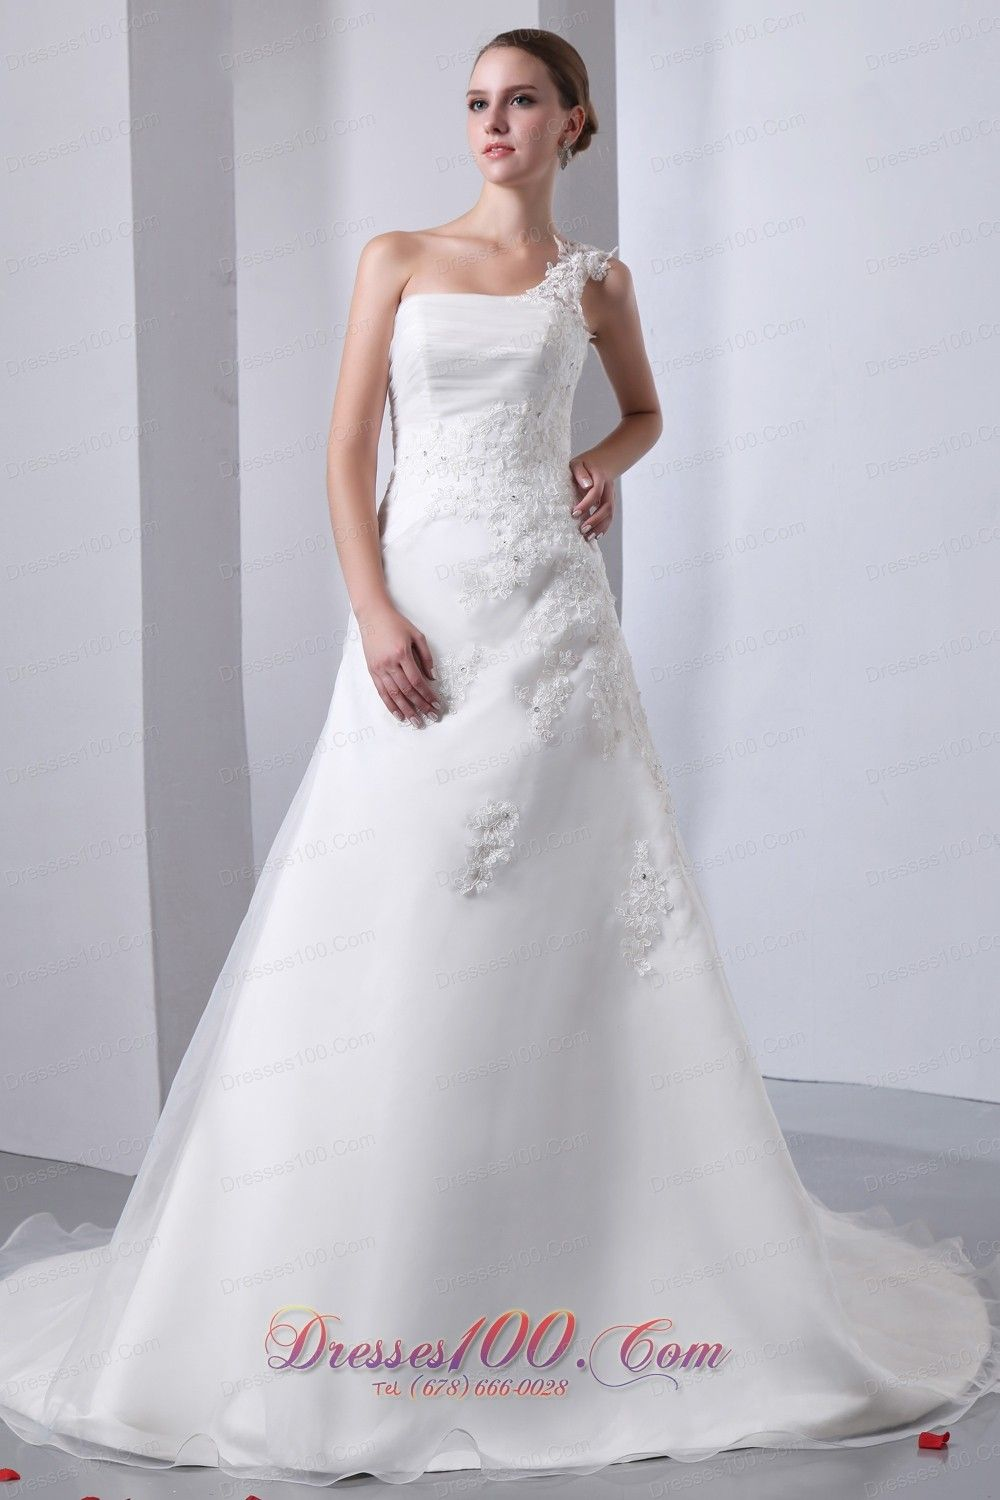 Low price wedding dress in wollongong wedding dresses flower girl low price wedding dress in wollongong wedding dresses flower girl dresses bridesmaid dresses mother of the ombrellifo Images